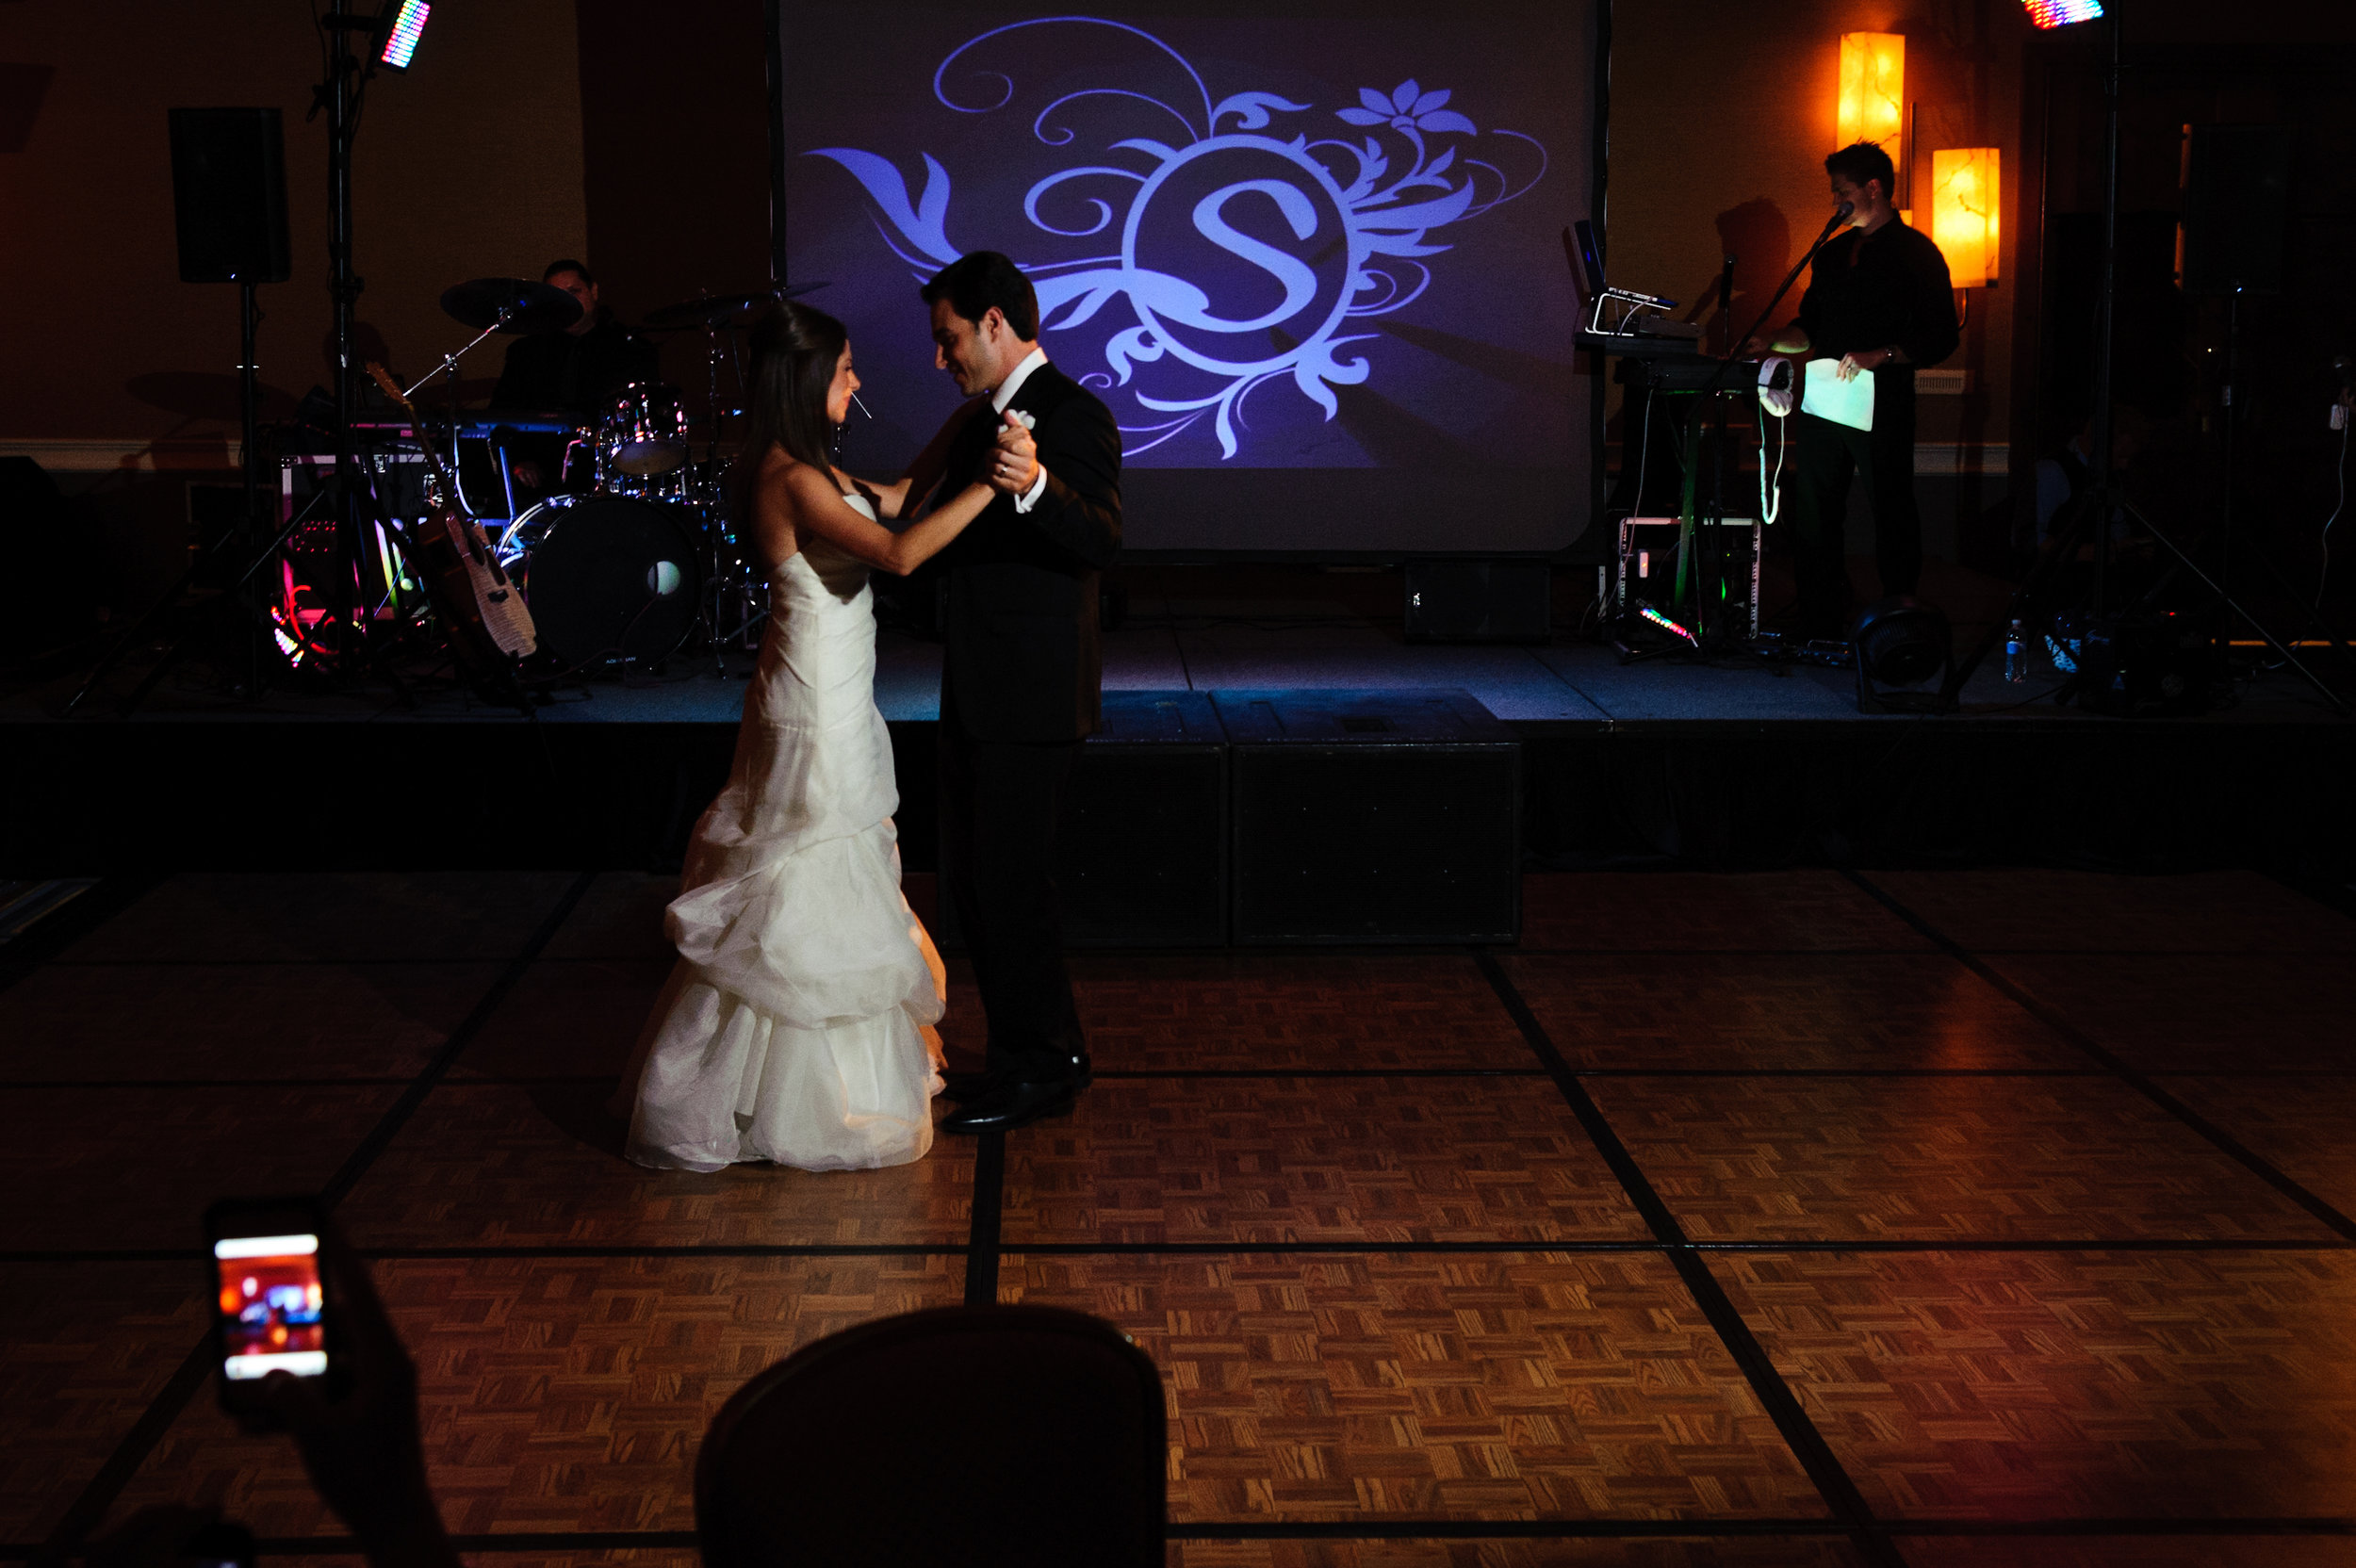 31 bride and groom first dance bride and groom on dance floor special moment with bride and groom Sergio Photography Life Design Events.JPG